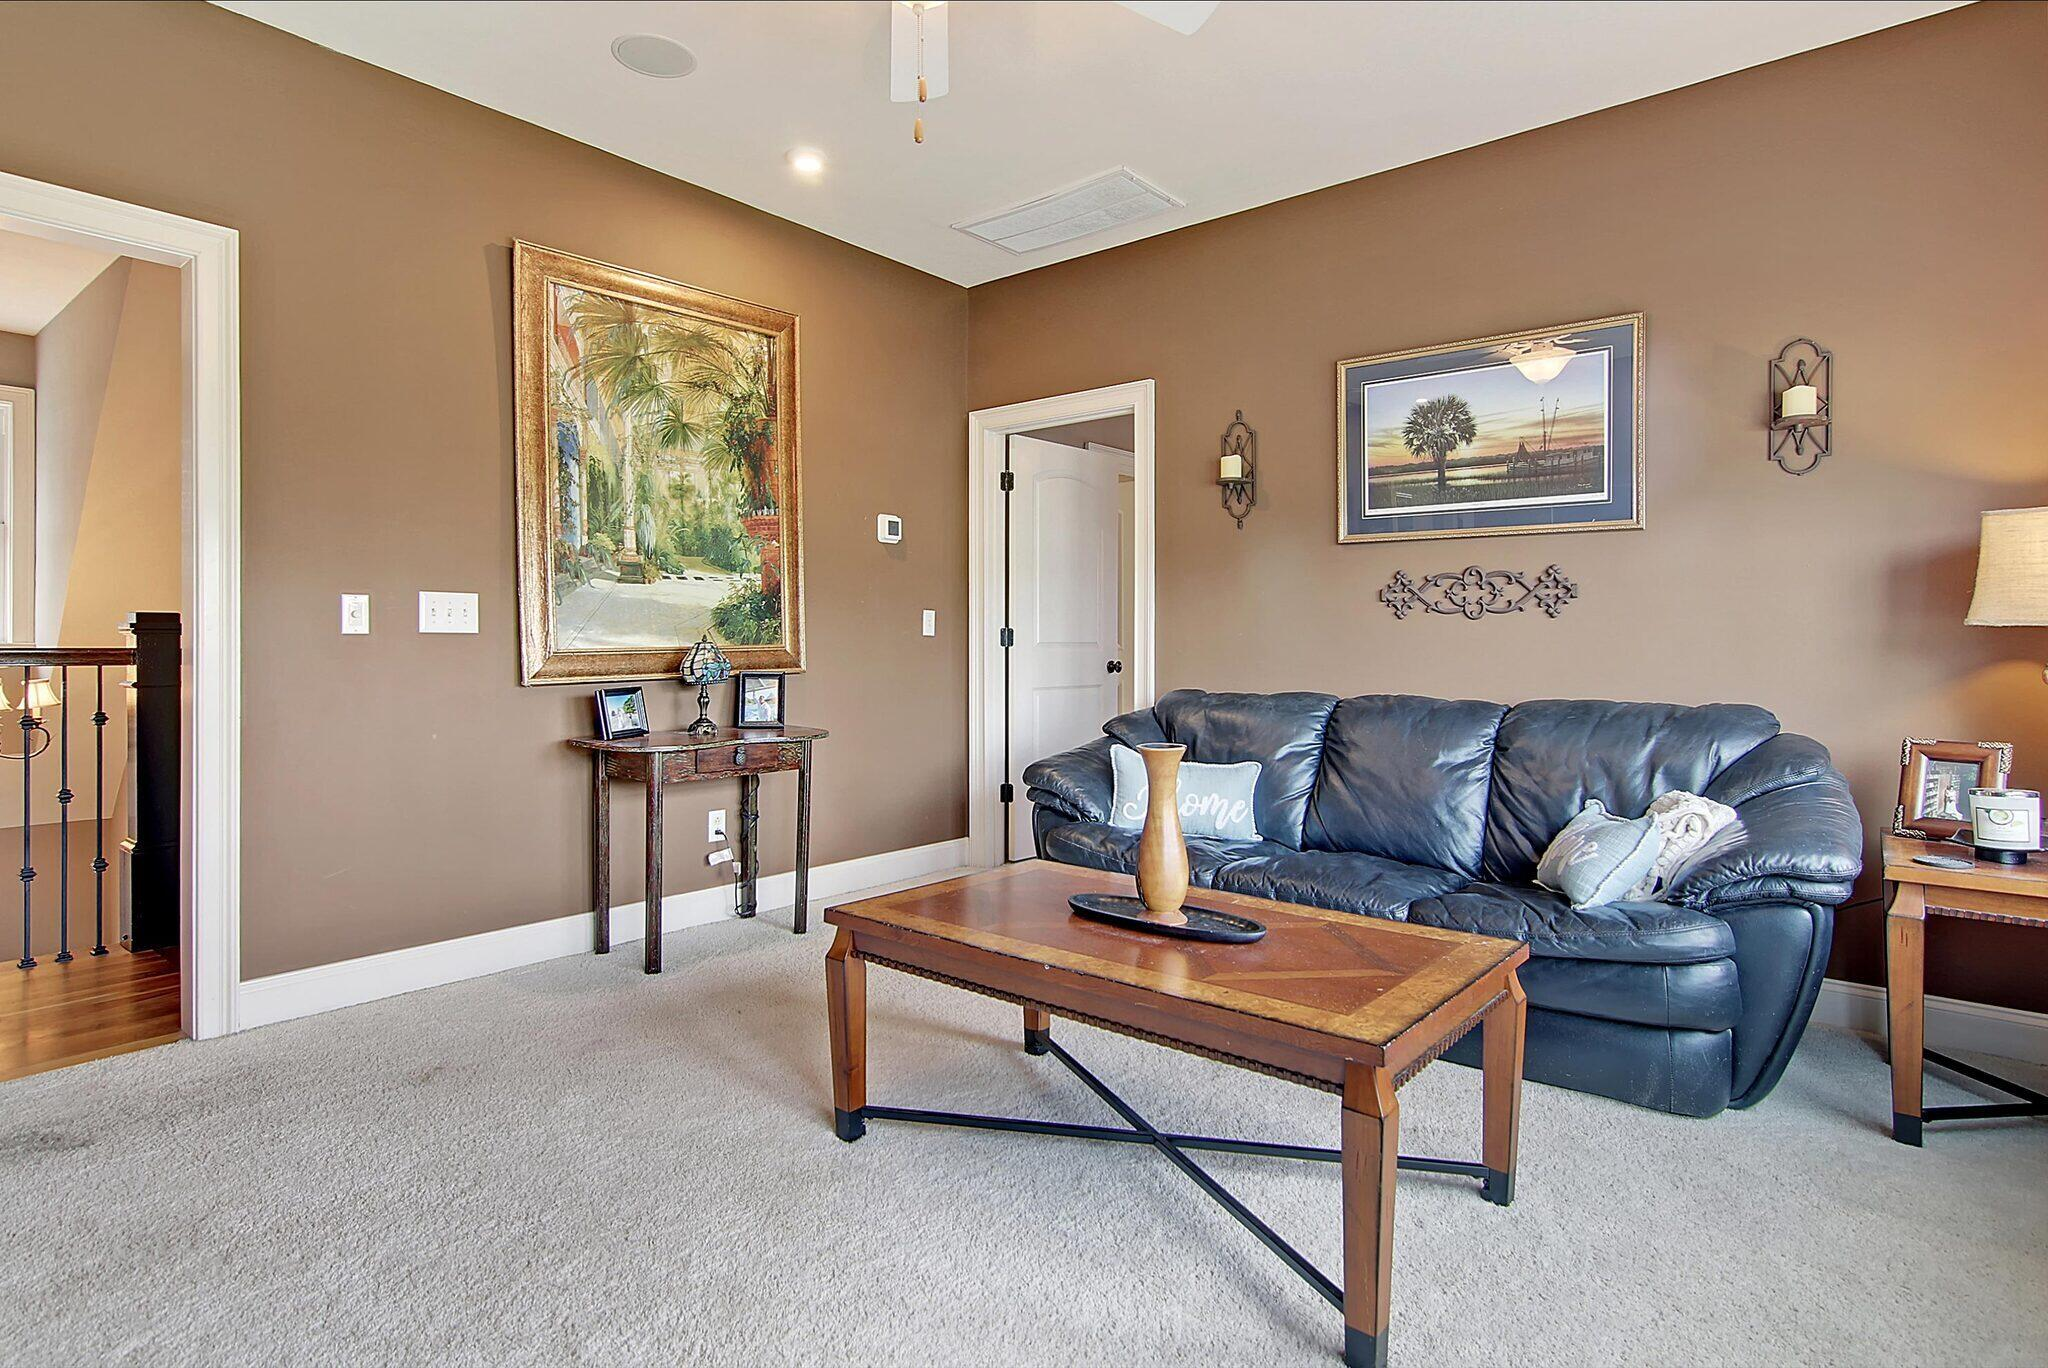 Rivertowne On The Wando Homes For Sale - 2128 Sandy Point, Mount Pleasant, SC - 59